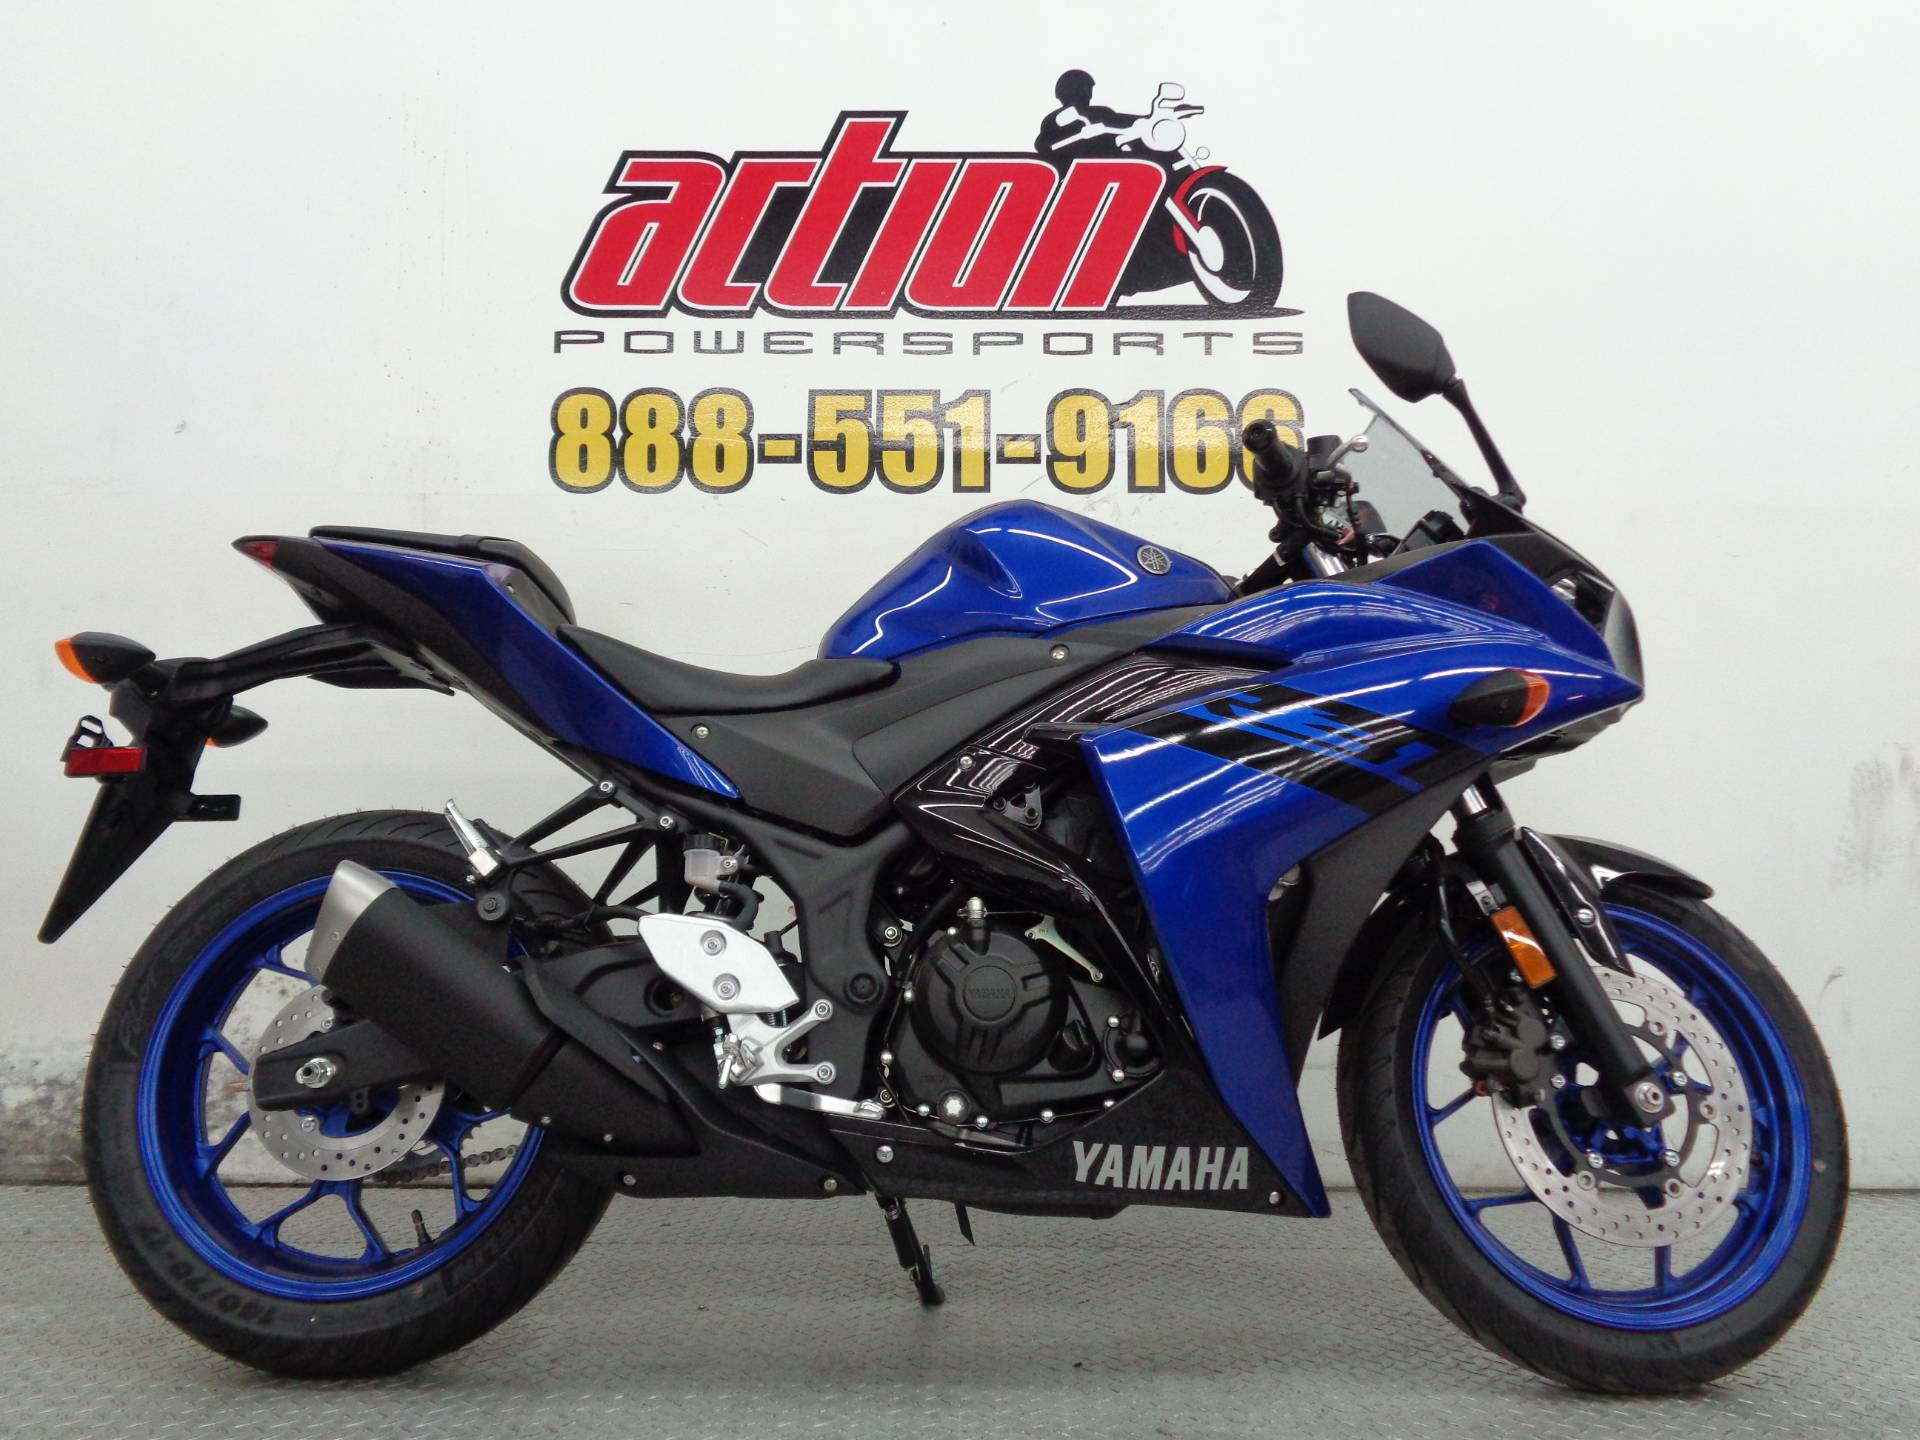 New 2018 yamaha yzf r3 motorcycles in tulsa ok stock for Yamaha installment financing